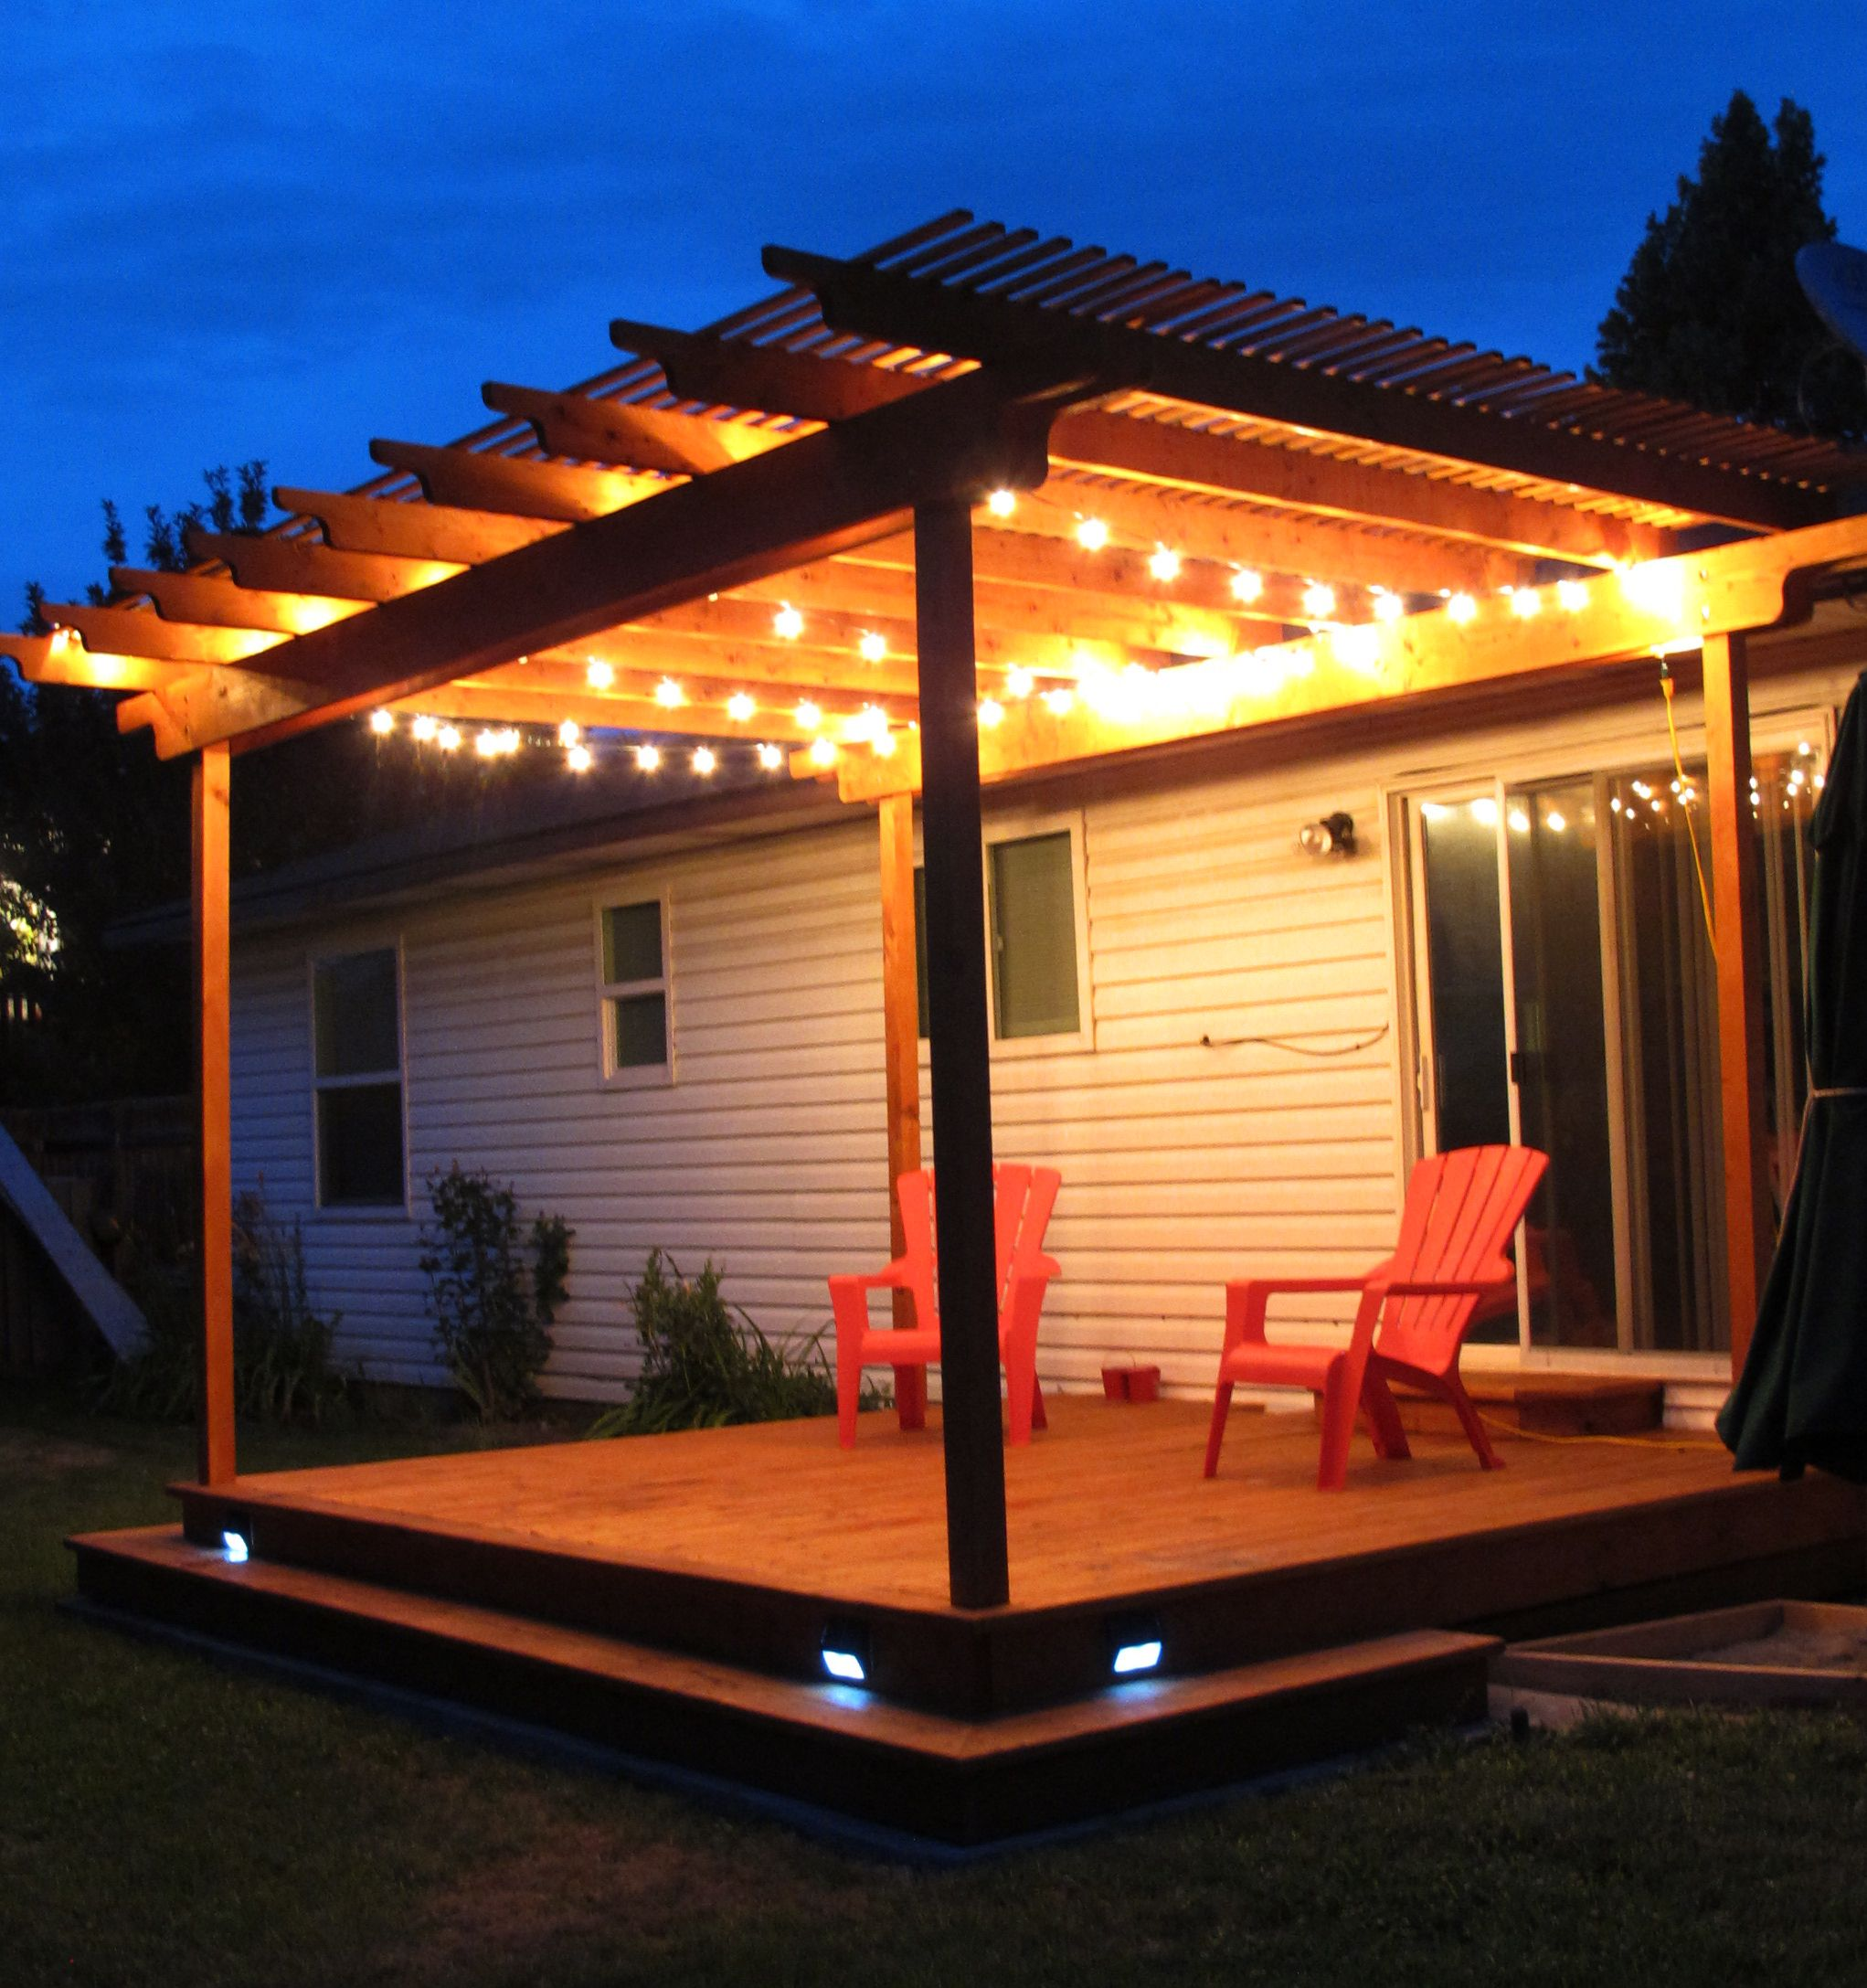 éclairage Pergola Terrasse Awesome Pergola Deck With Wraparound Step And Strand Lighting It